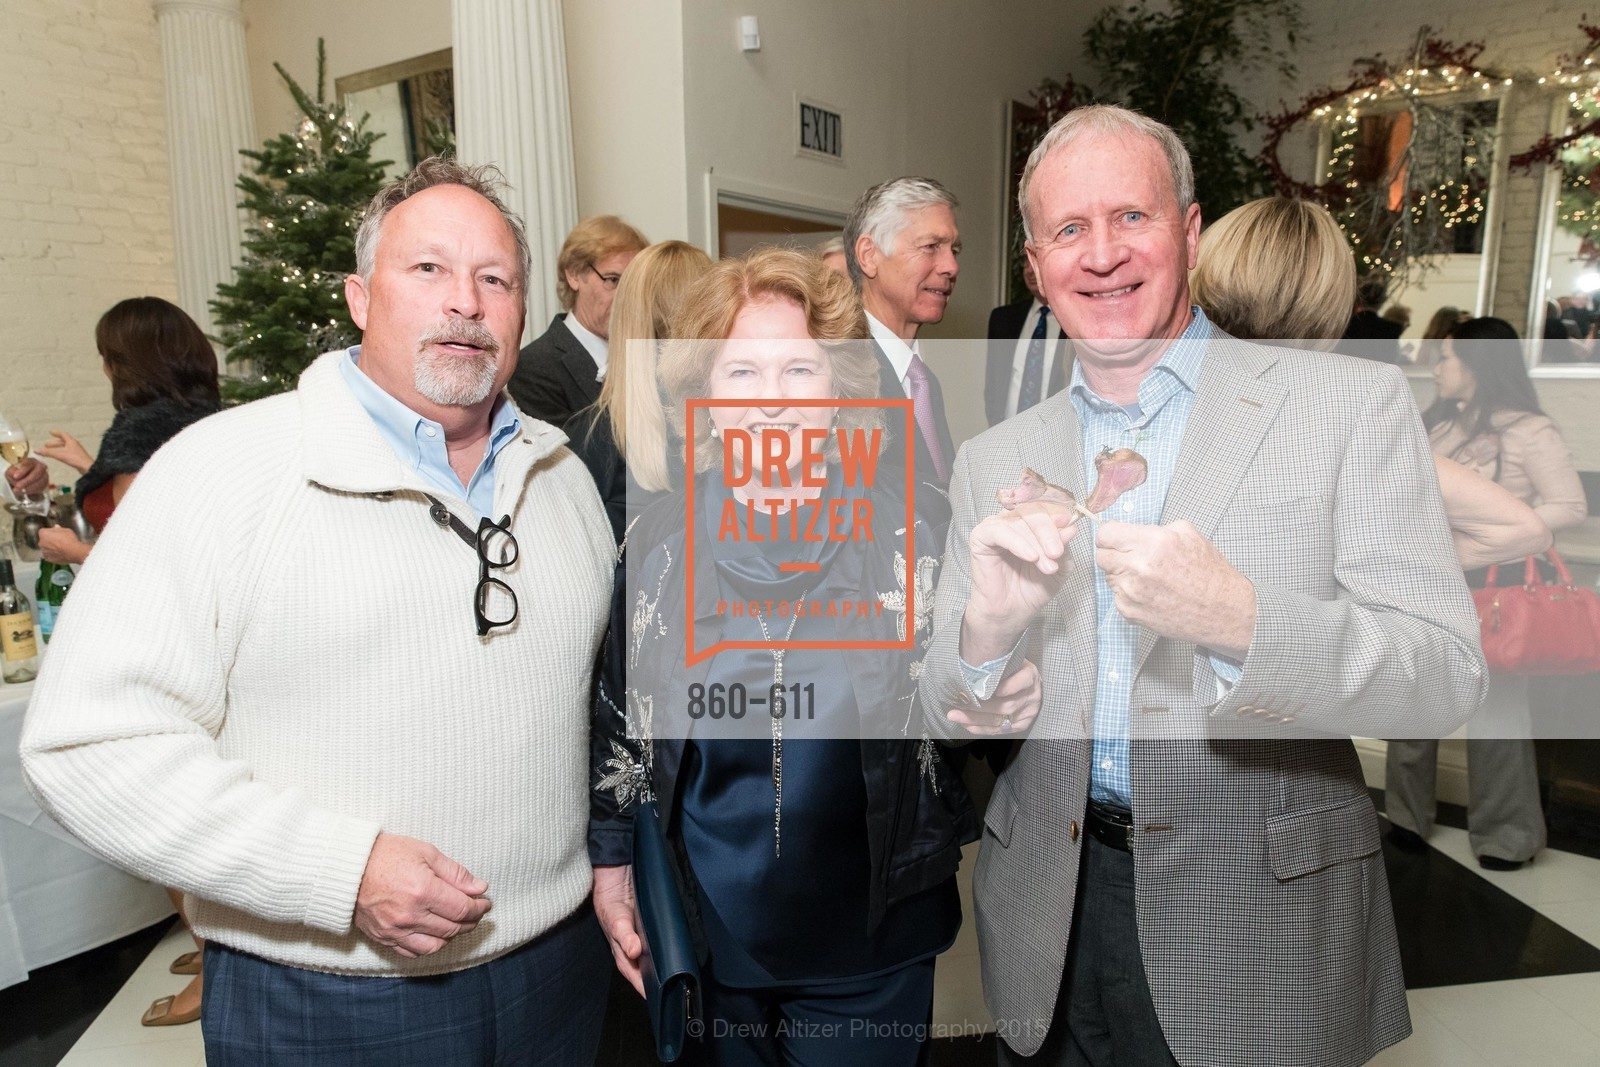 MIles Woodlief, Rene Hollins, Brian Hollins, San Francisco Ballet Auxiliary's Gala Launch party hosted by La Perla., VILLA TAVERA. 27 HOTALING PLACE, December 1st, 2015,Drew Altizer, Drew Altizer Photography, full-service event agency, private events, San Francisco photographer, photographer California